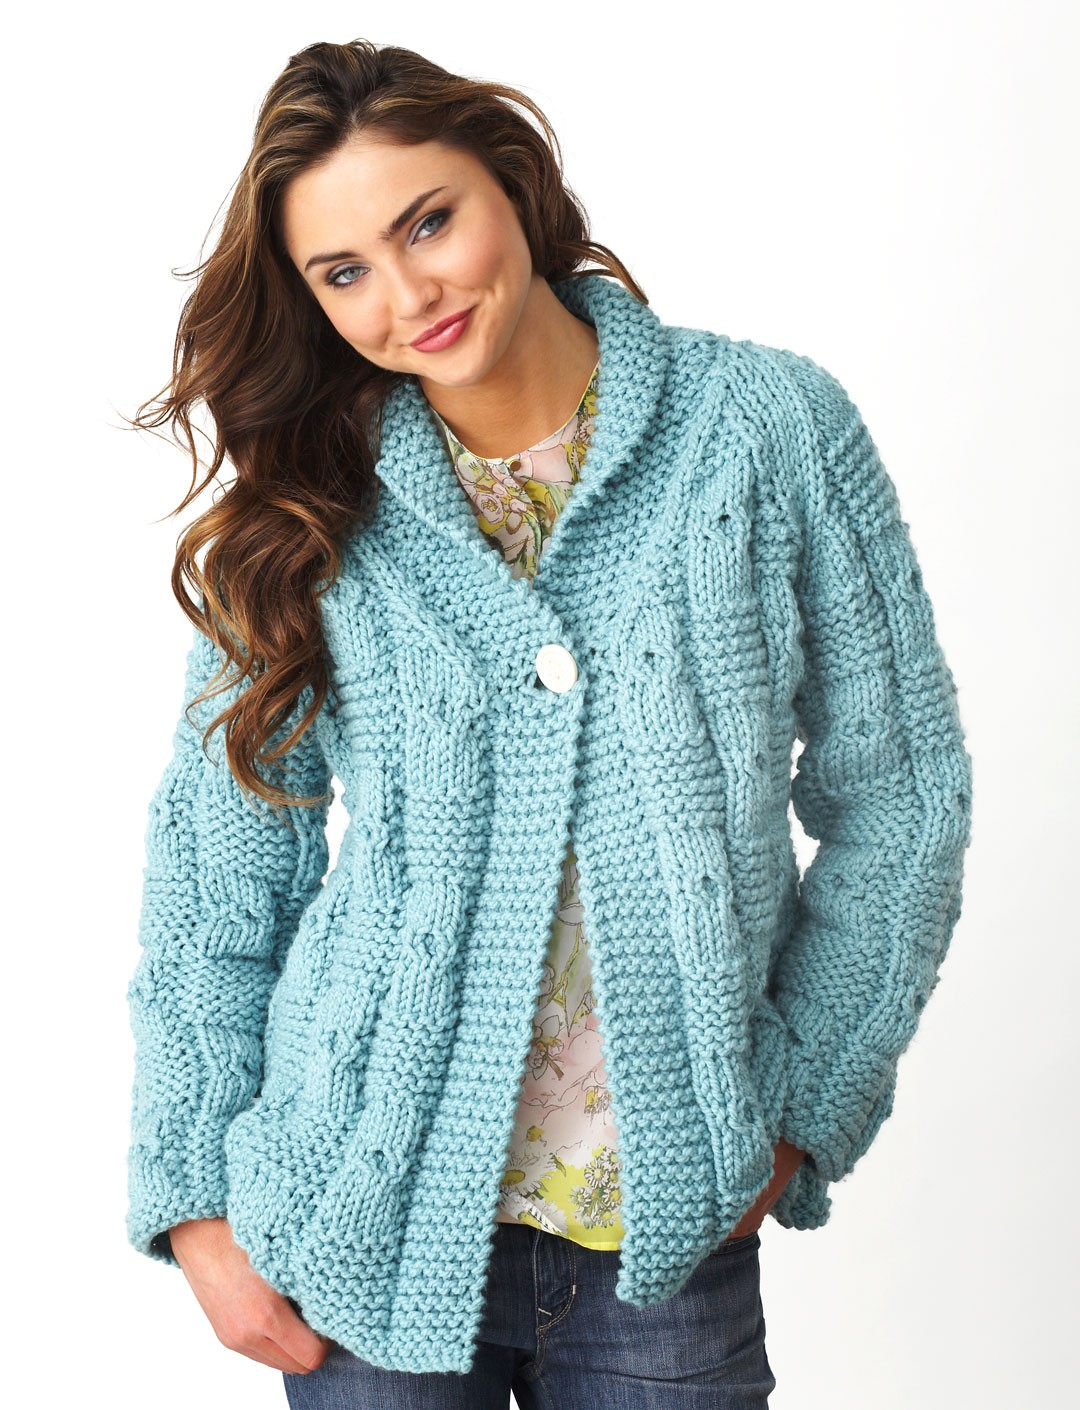 Free Knitted Sweater Patterns For Women : Bernat Textured Checks Cardigan, Knit Pattern Yarnspirations